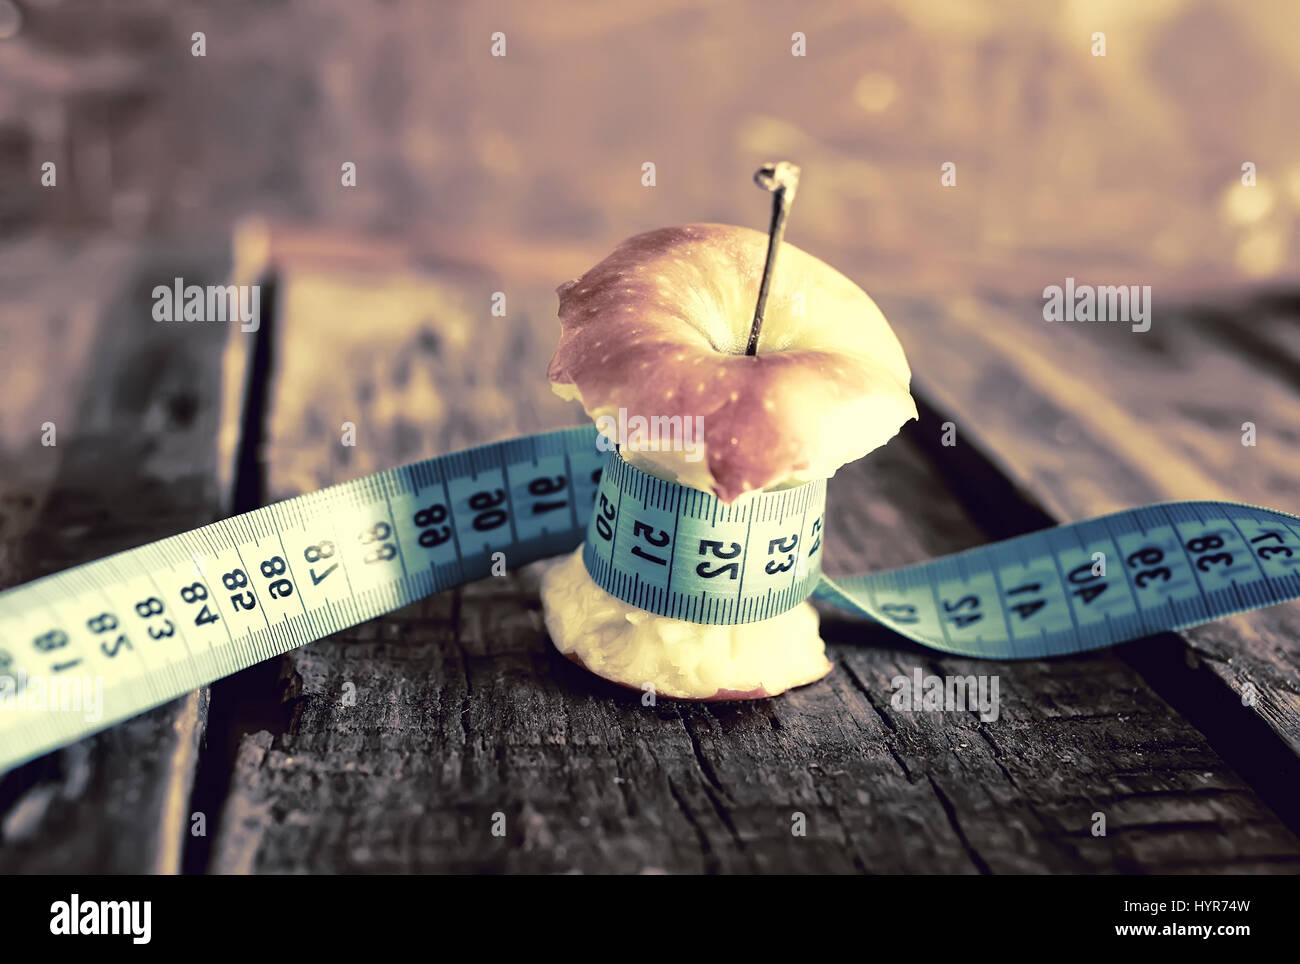 anorexia thinness measuring apple - Stock Image